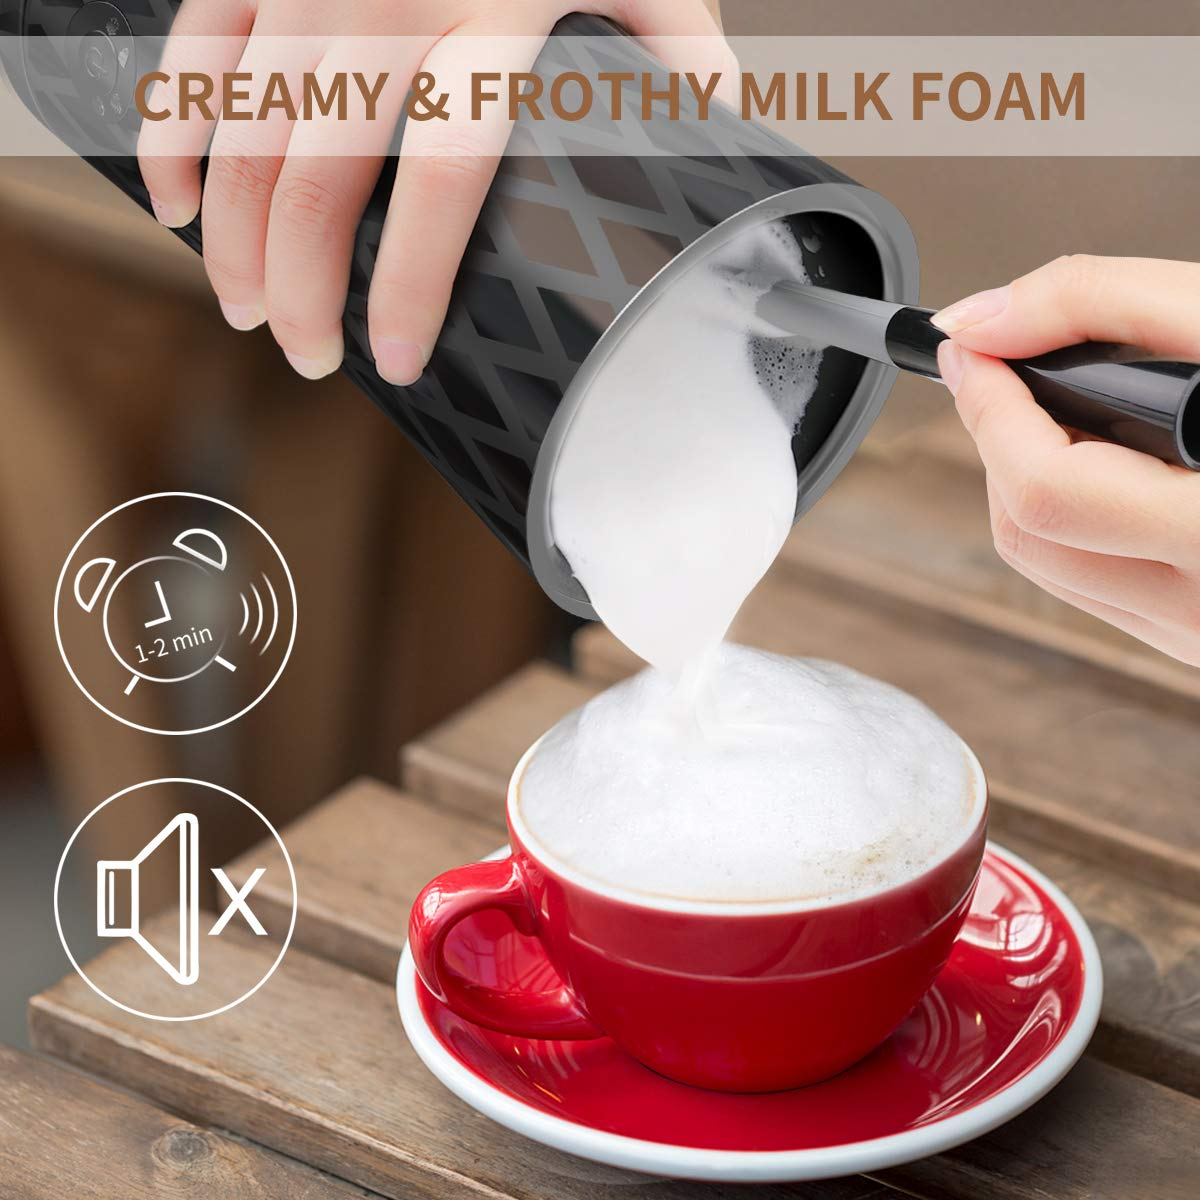 Electric Milk Frother Warmer - Compact Stainless Steel Steaming Set w/Automatic Power Off Safety Feature & LED Light Indicator for Easy Foamer and Hot Coffee Creamy Latte